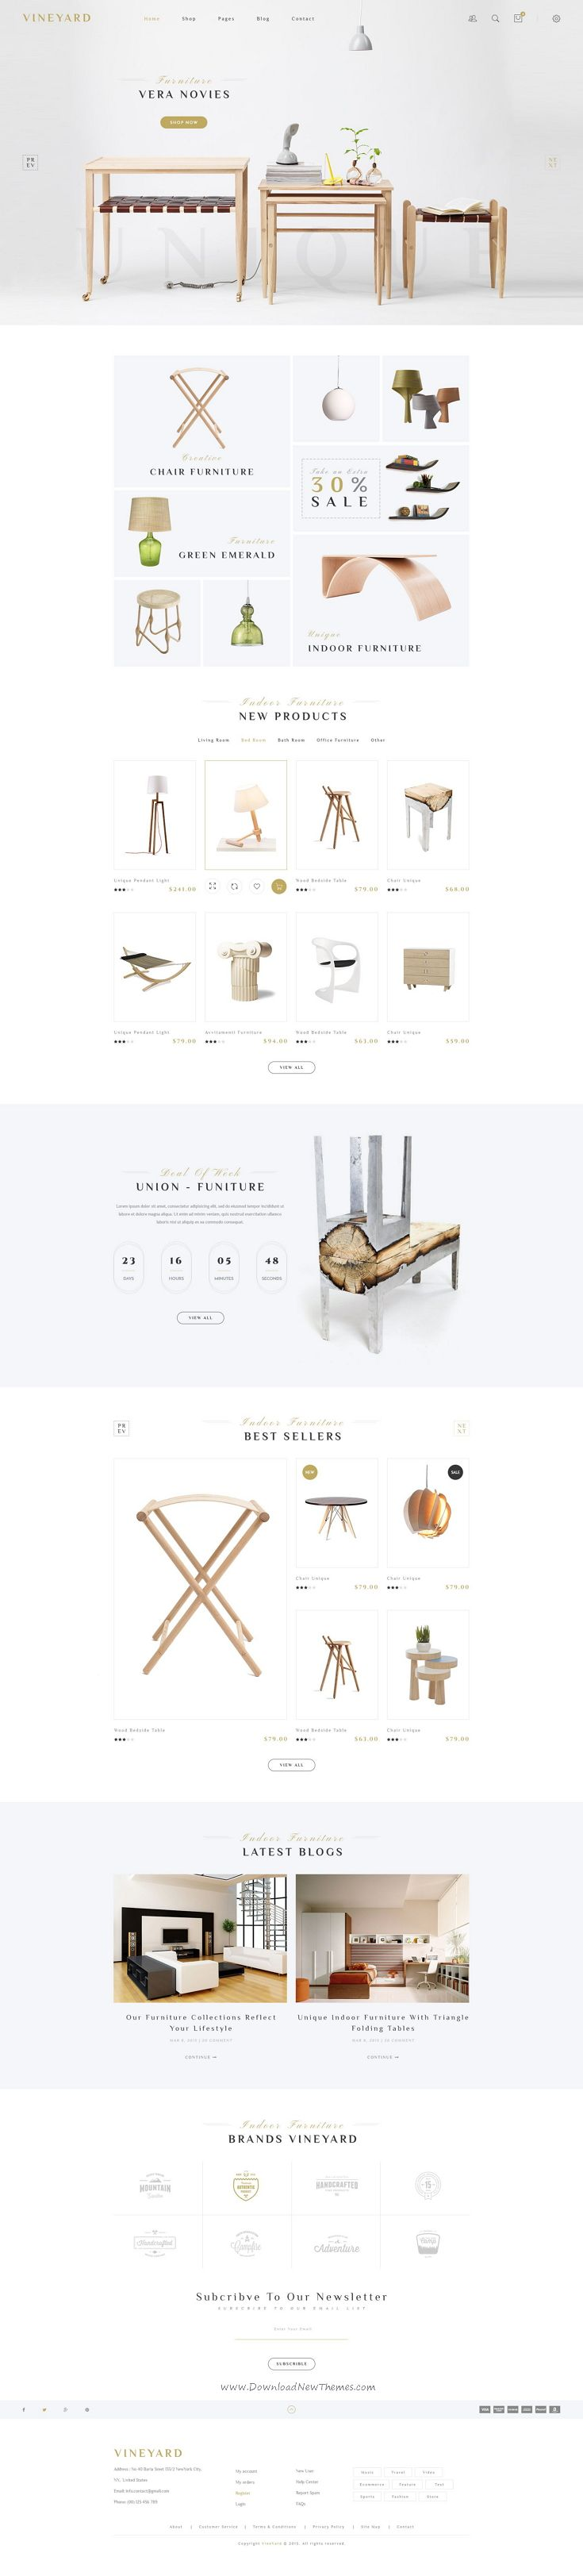 Lpo Template 627 Best Template Images On Pinterest  Web Layout Website Designs .